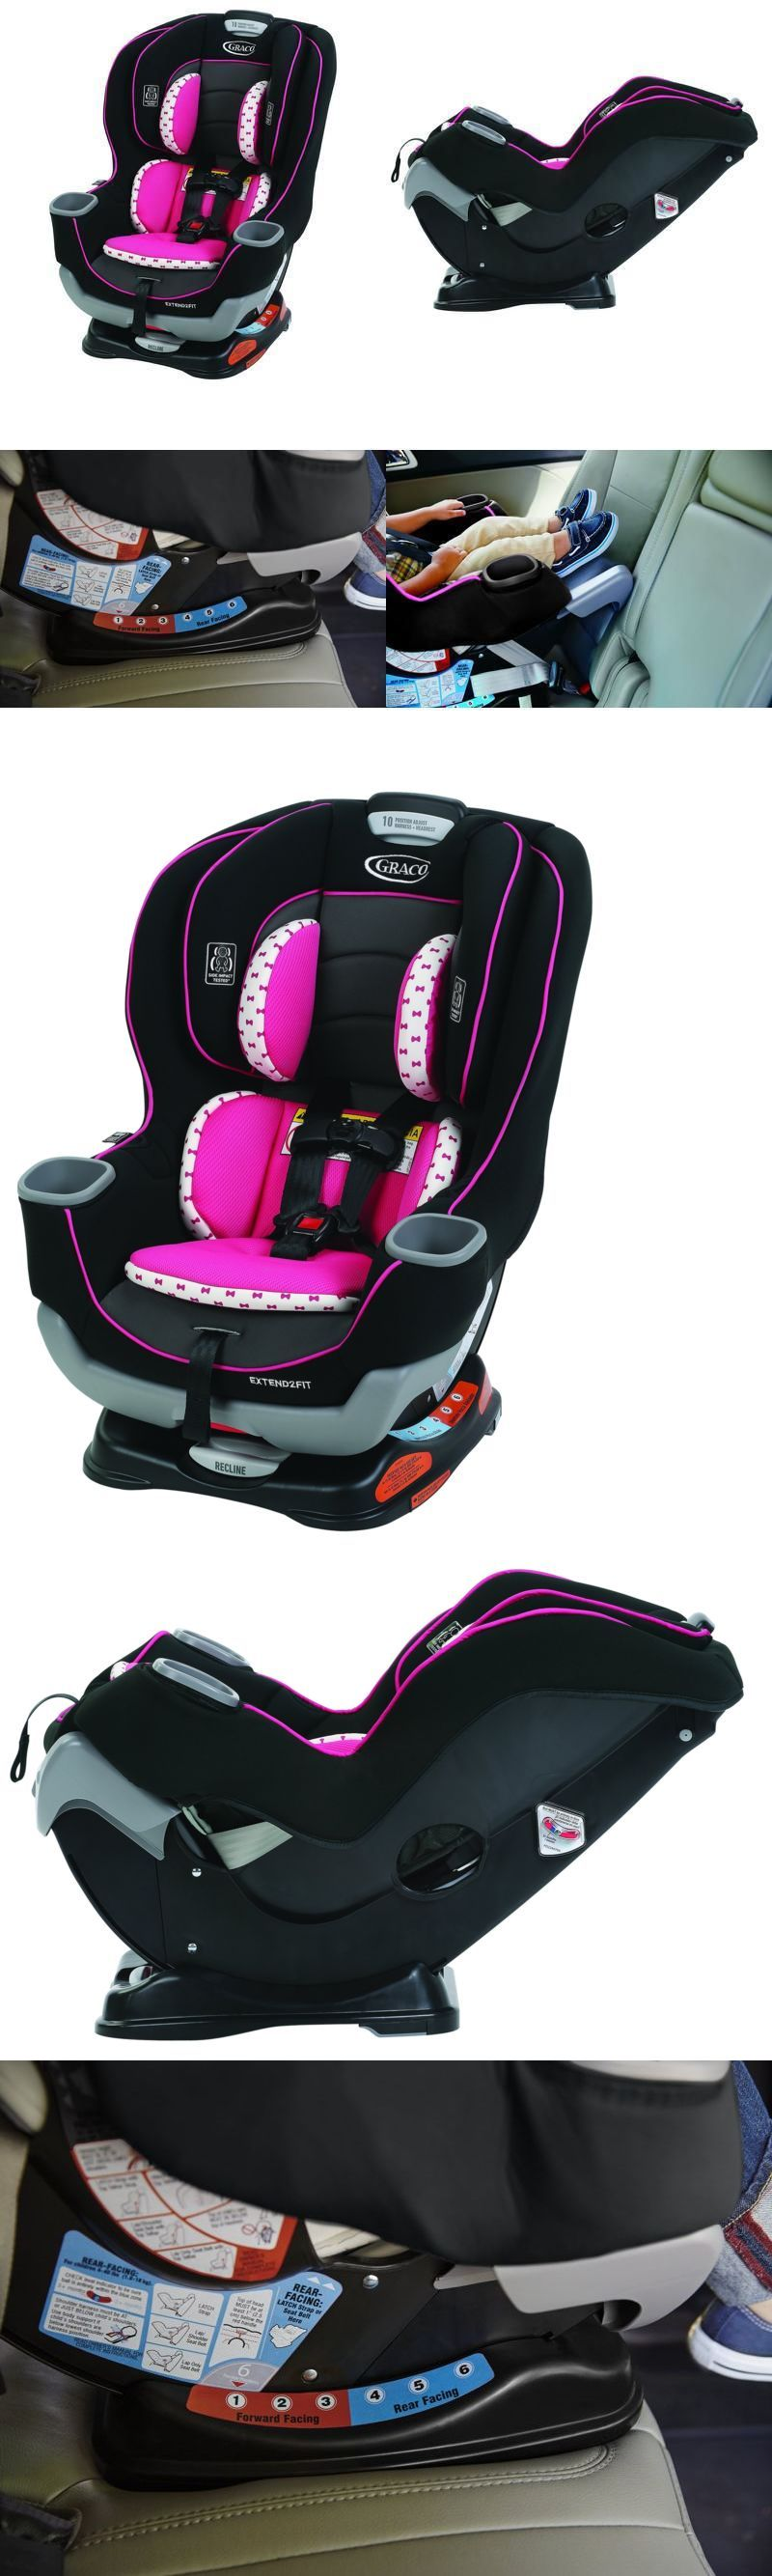 Convertible Car Seat Graco Extend2fit Baby Infant Vehicle Safety